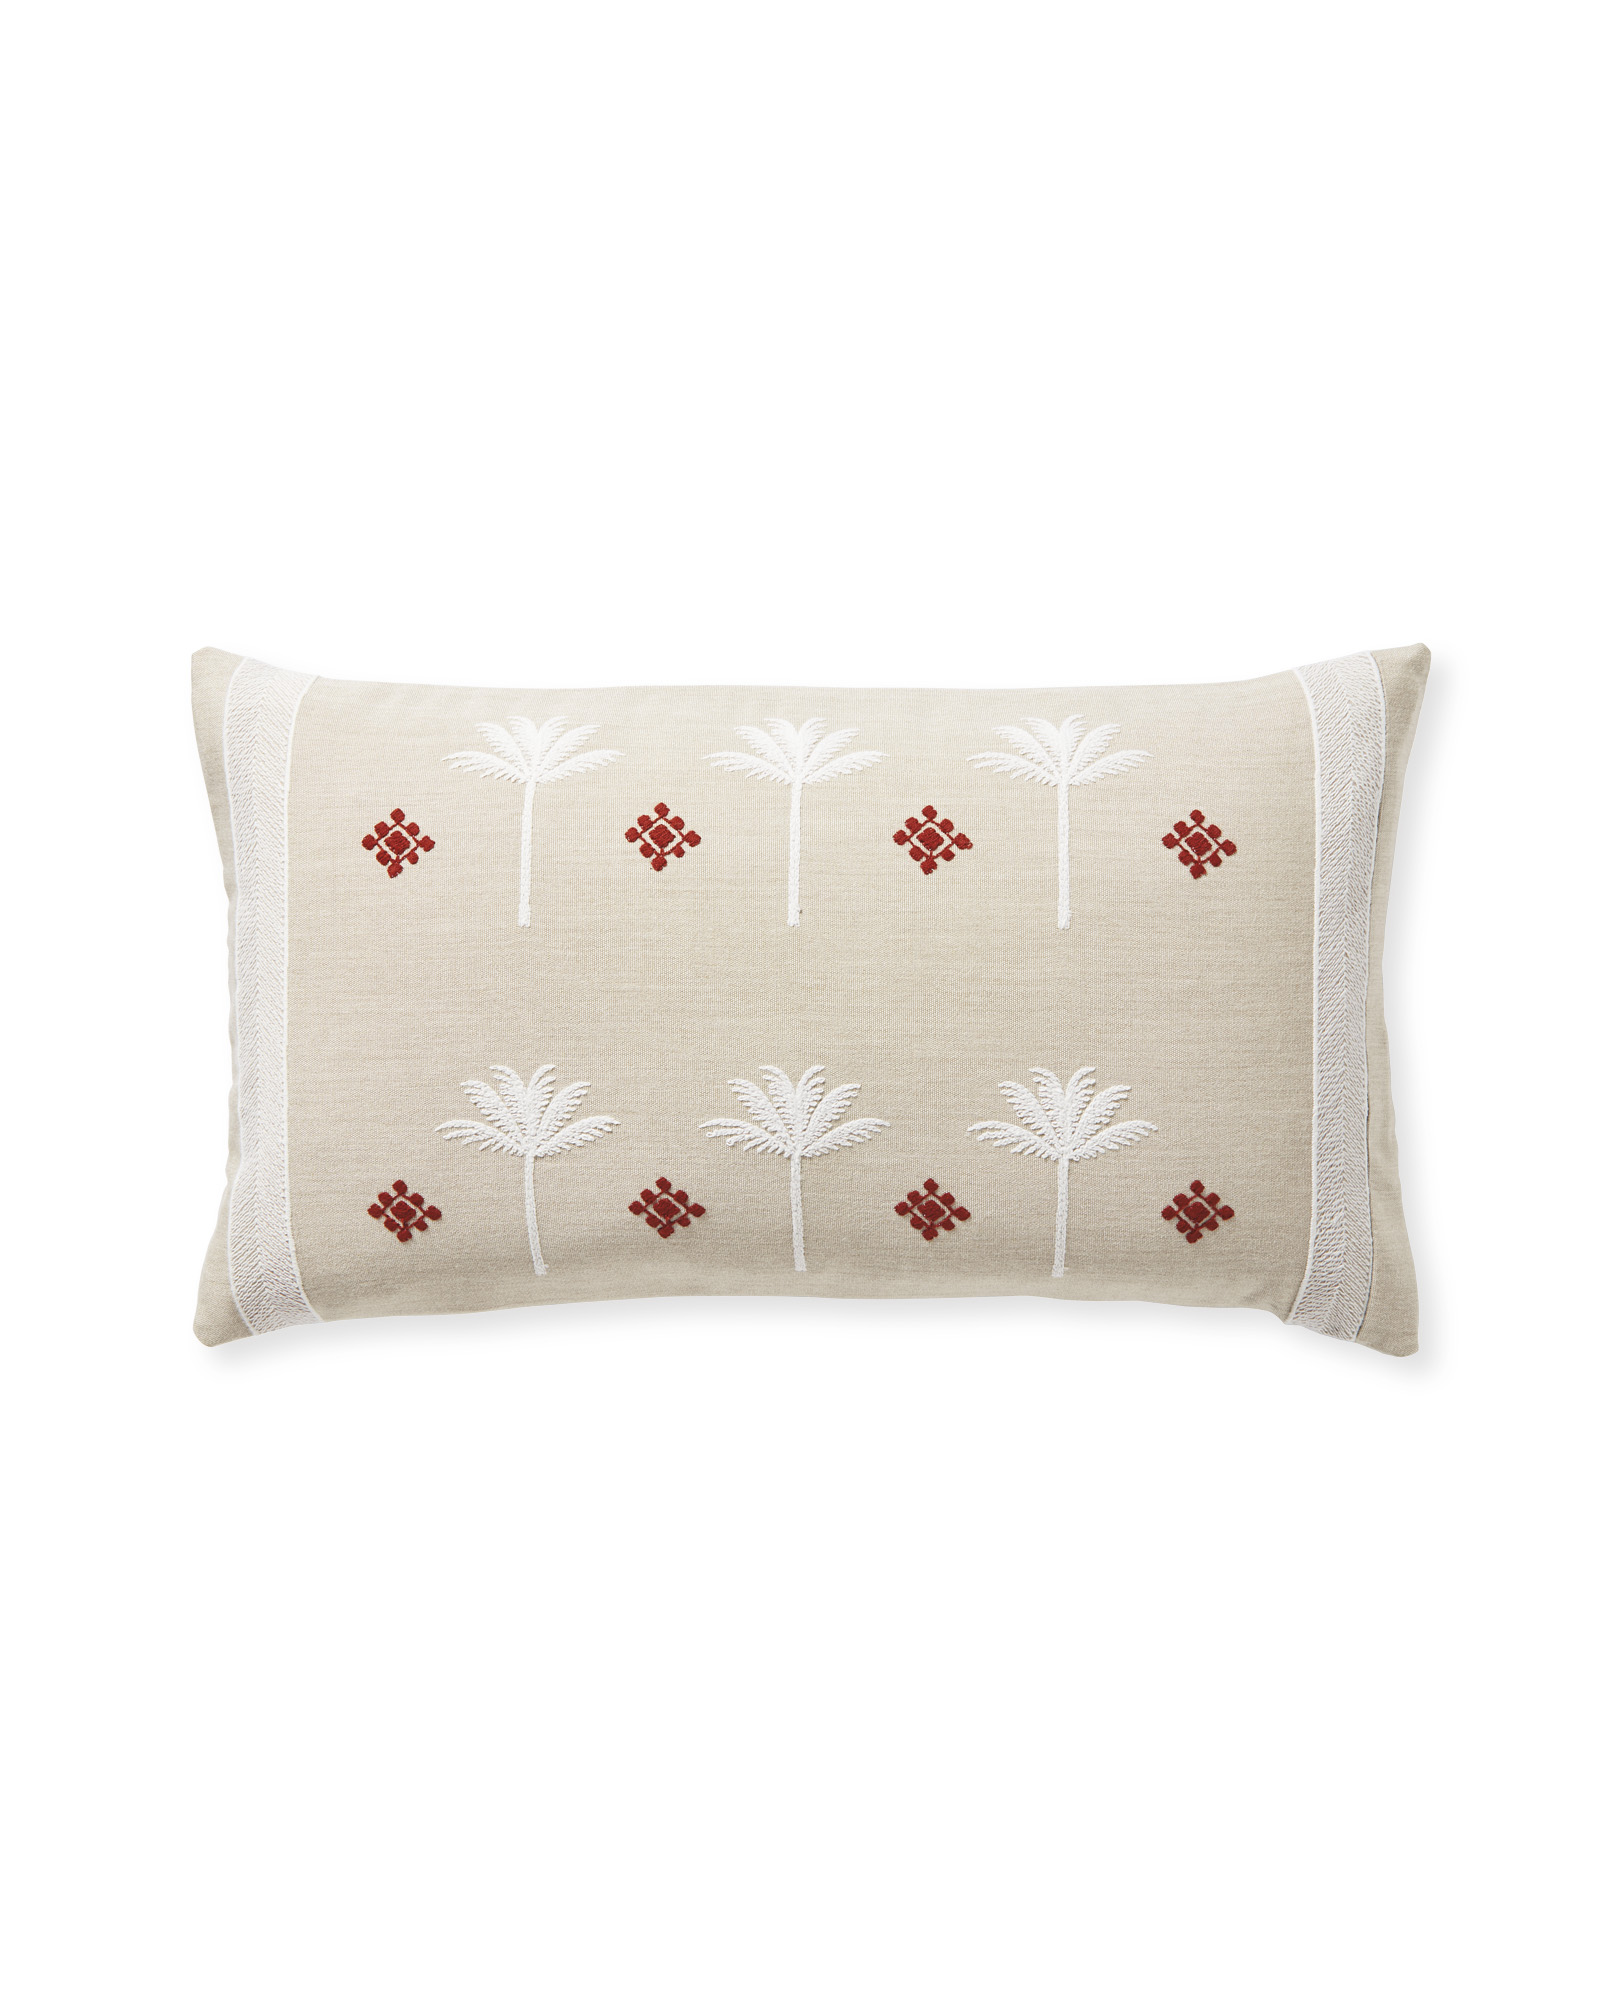 Veracruz Pillow Cover, Flax/Terracotta